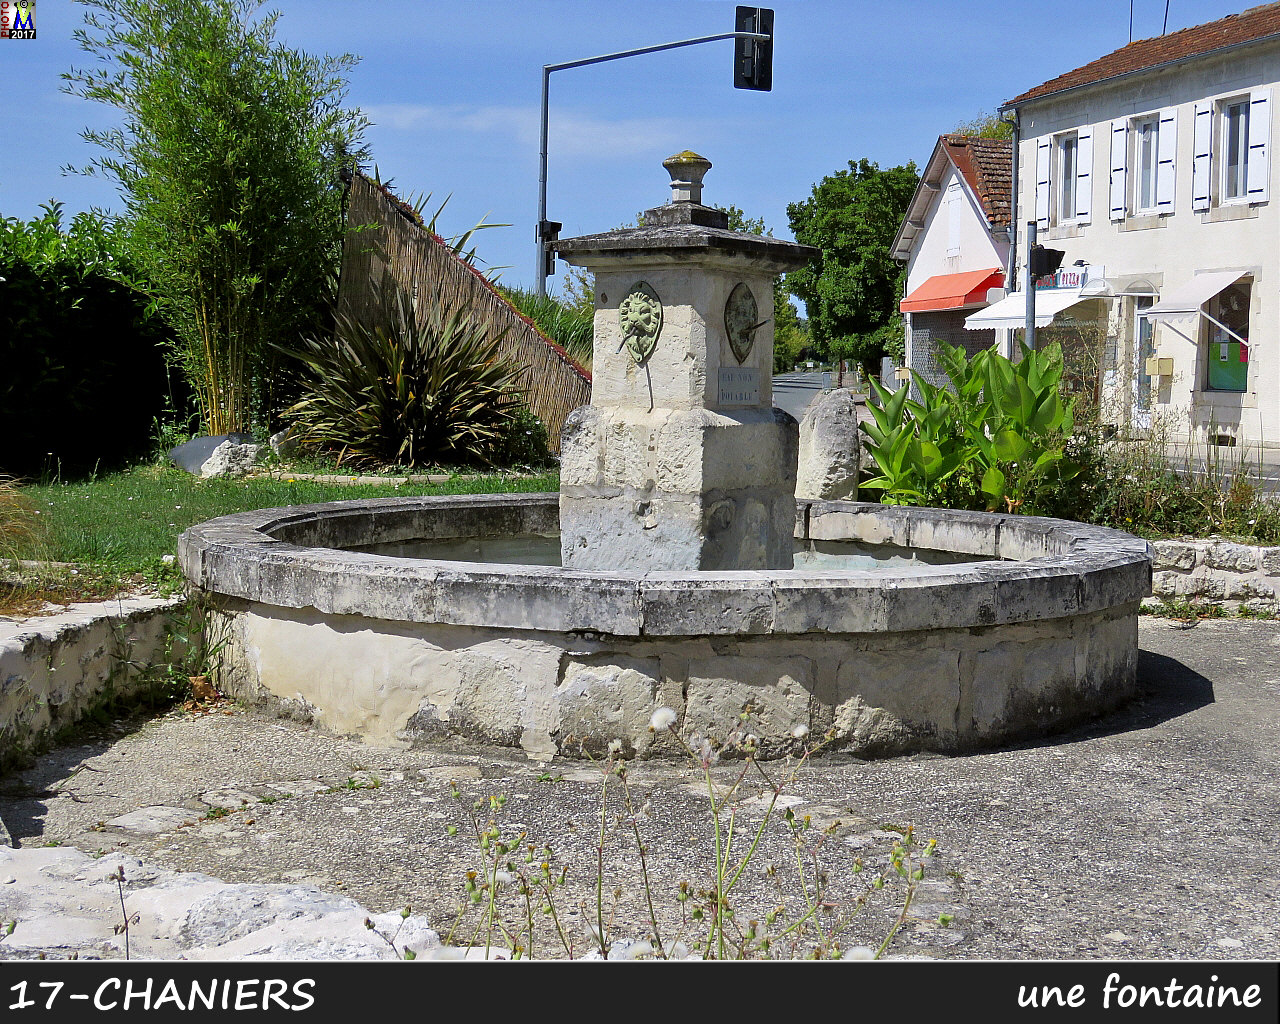 17CHANIERS_fontaine_1000.jpg